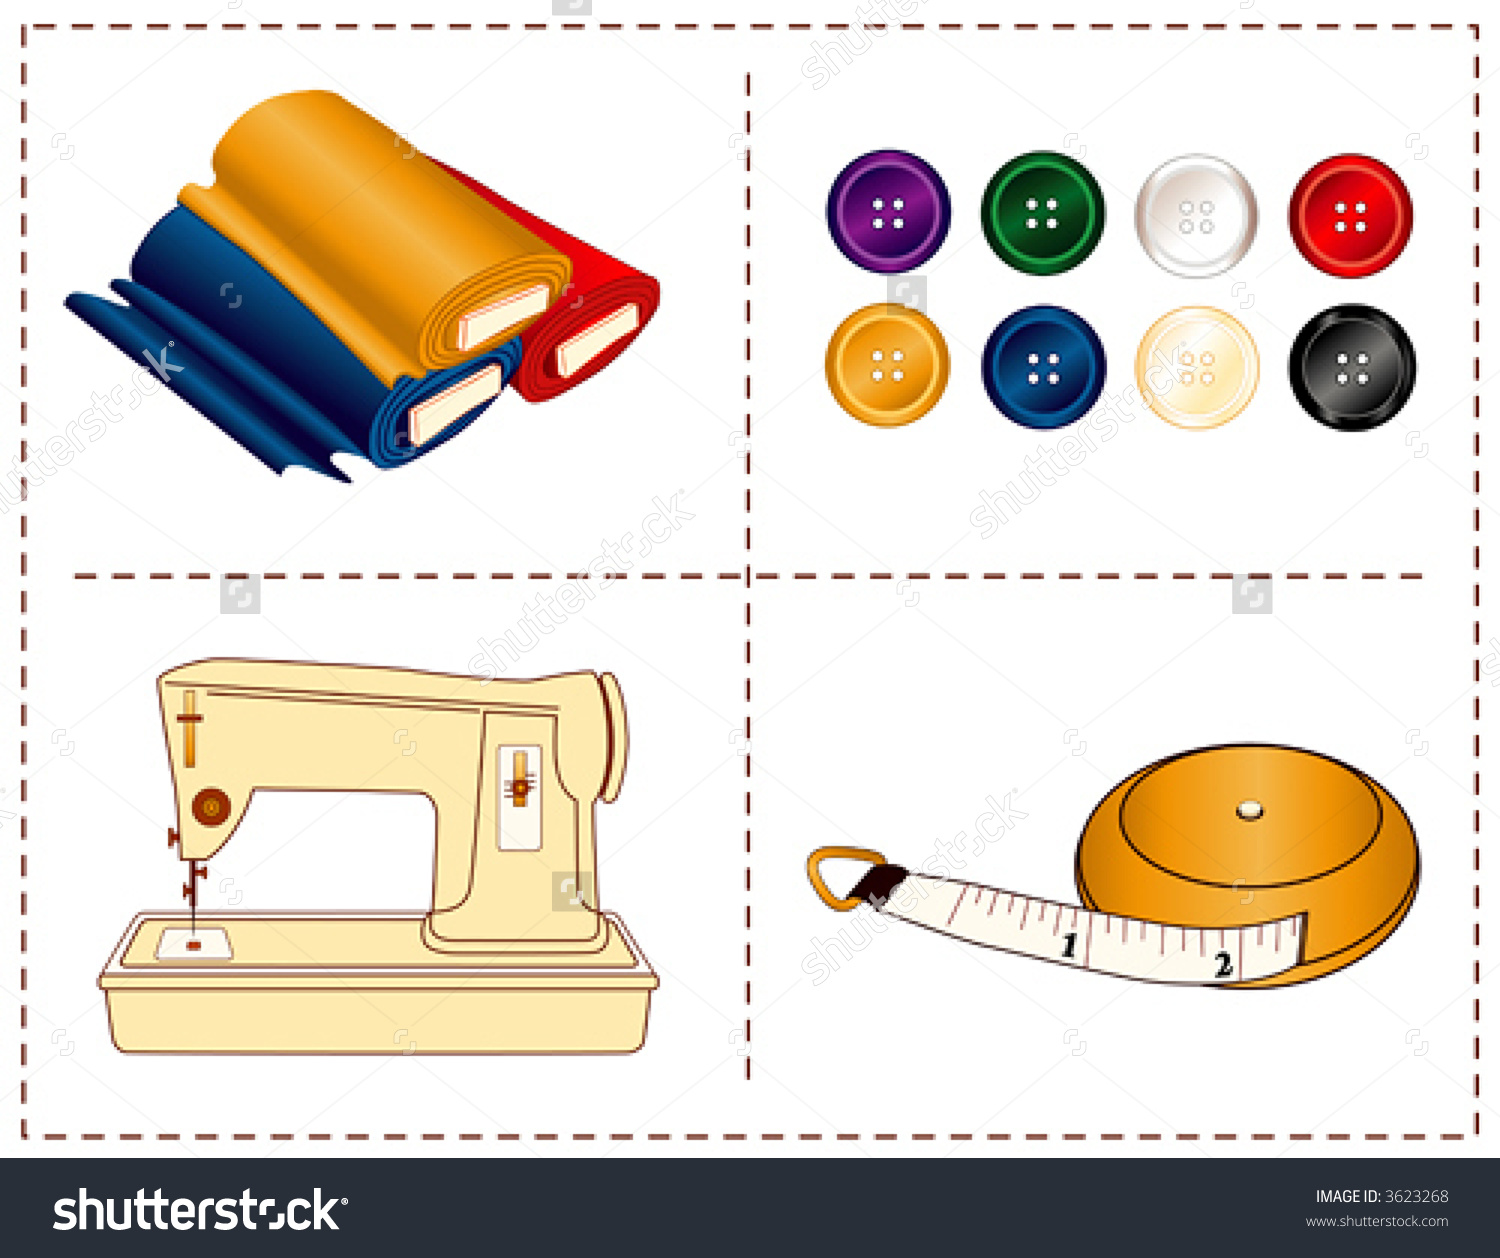 Sewing Tools Machine Tape Measure Bolts Stock Vector 3623268.